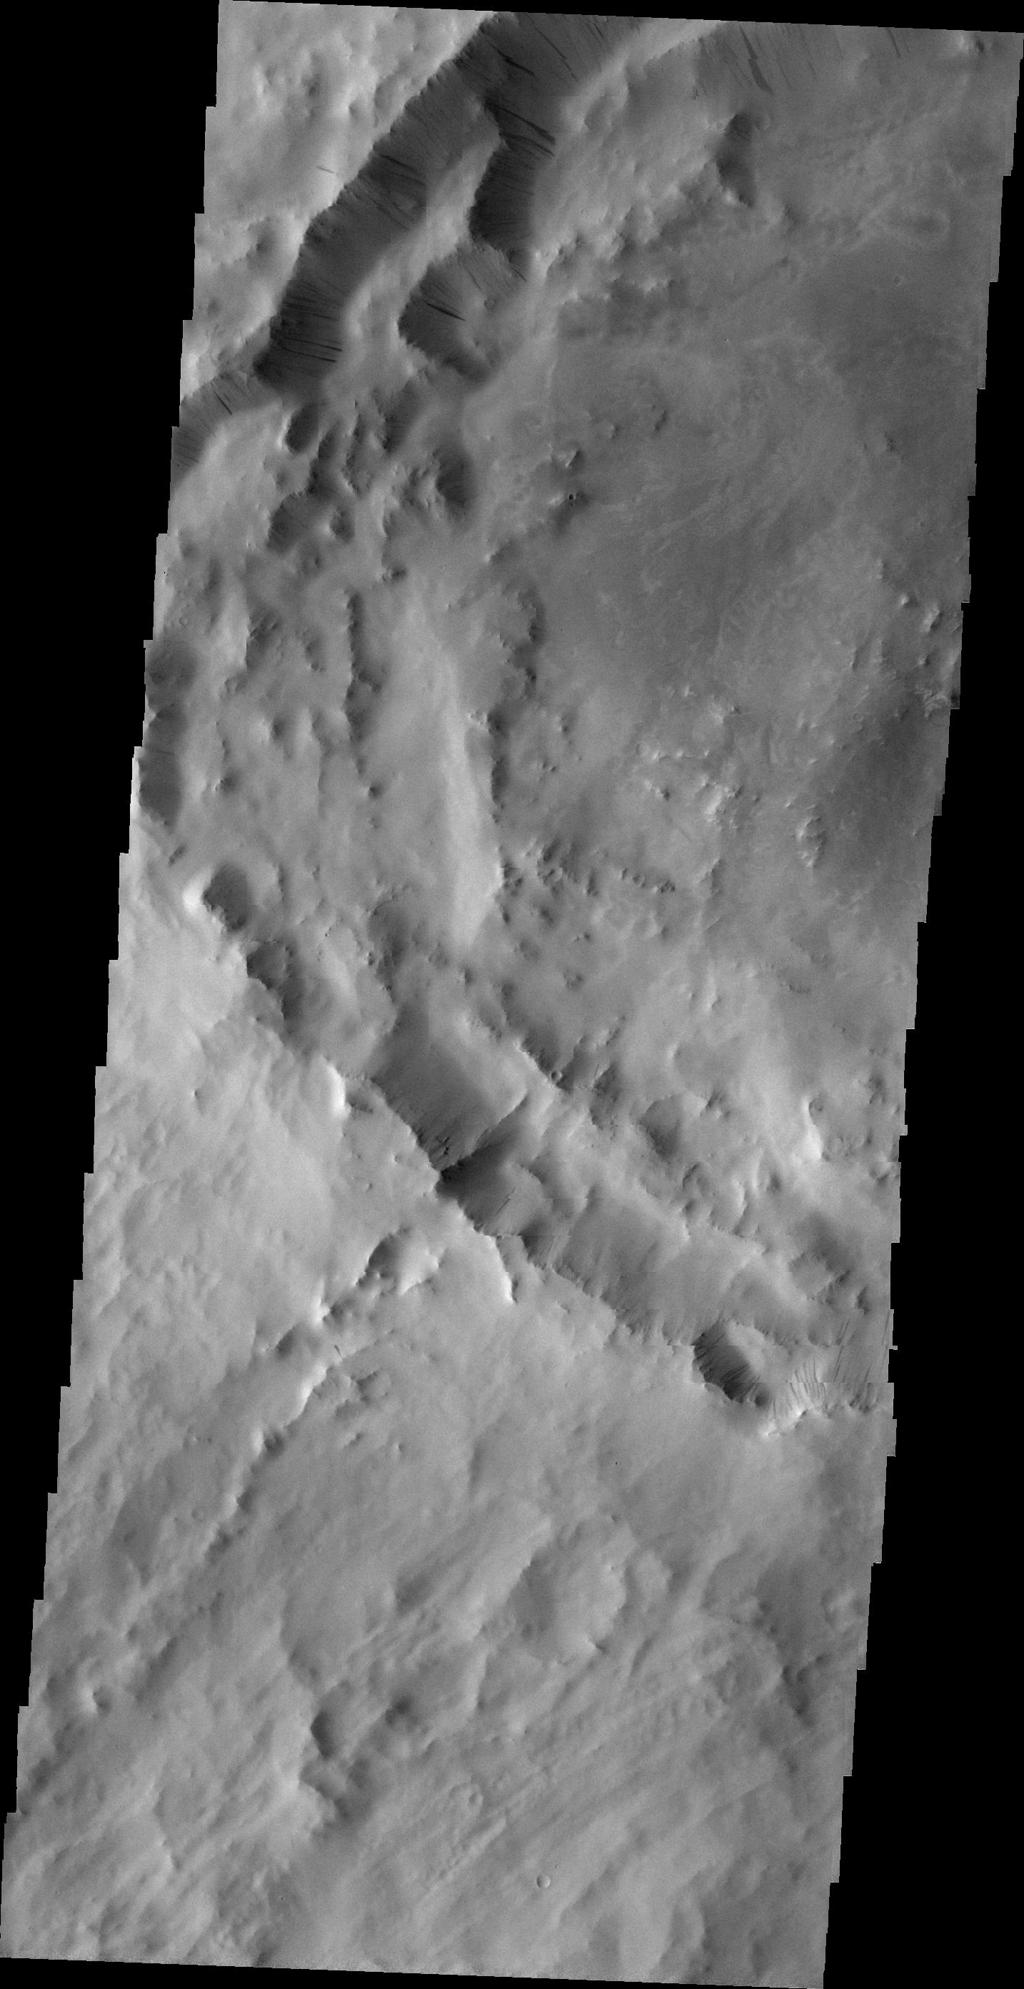 Numerous dark slope streaks mark the rim of this unnamed crater located on the rim of Henry Crater in this image taken by NASA's 2001 Mars Odyssey spacecraft.